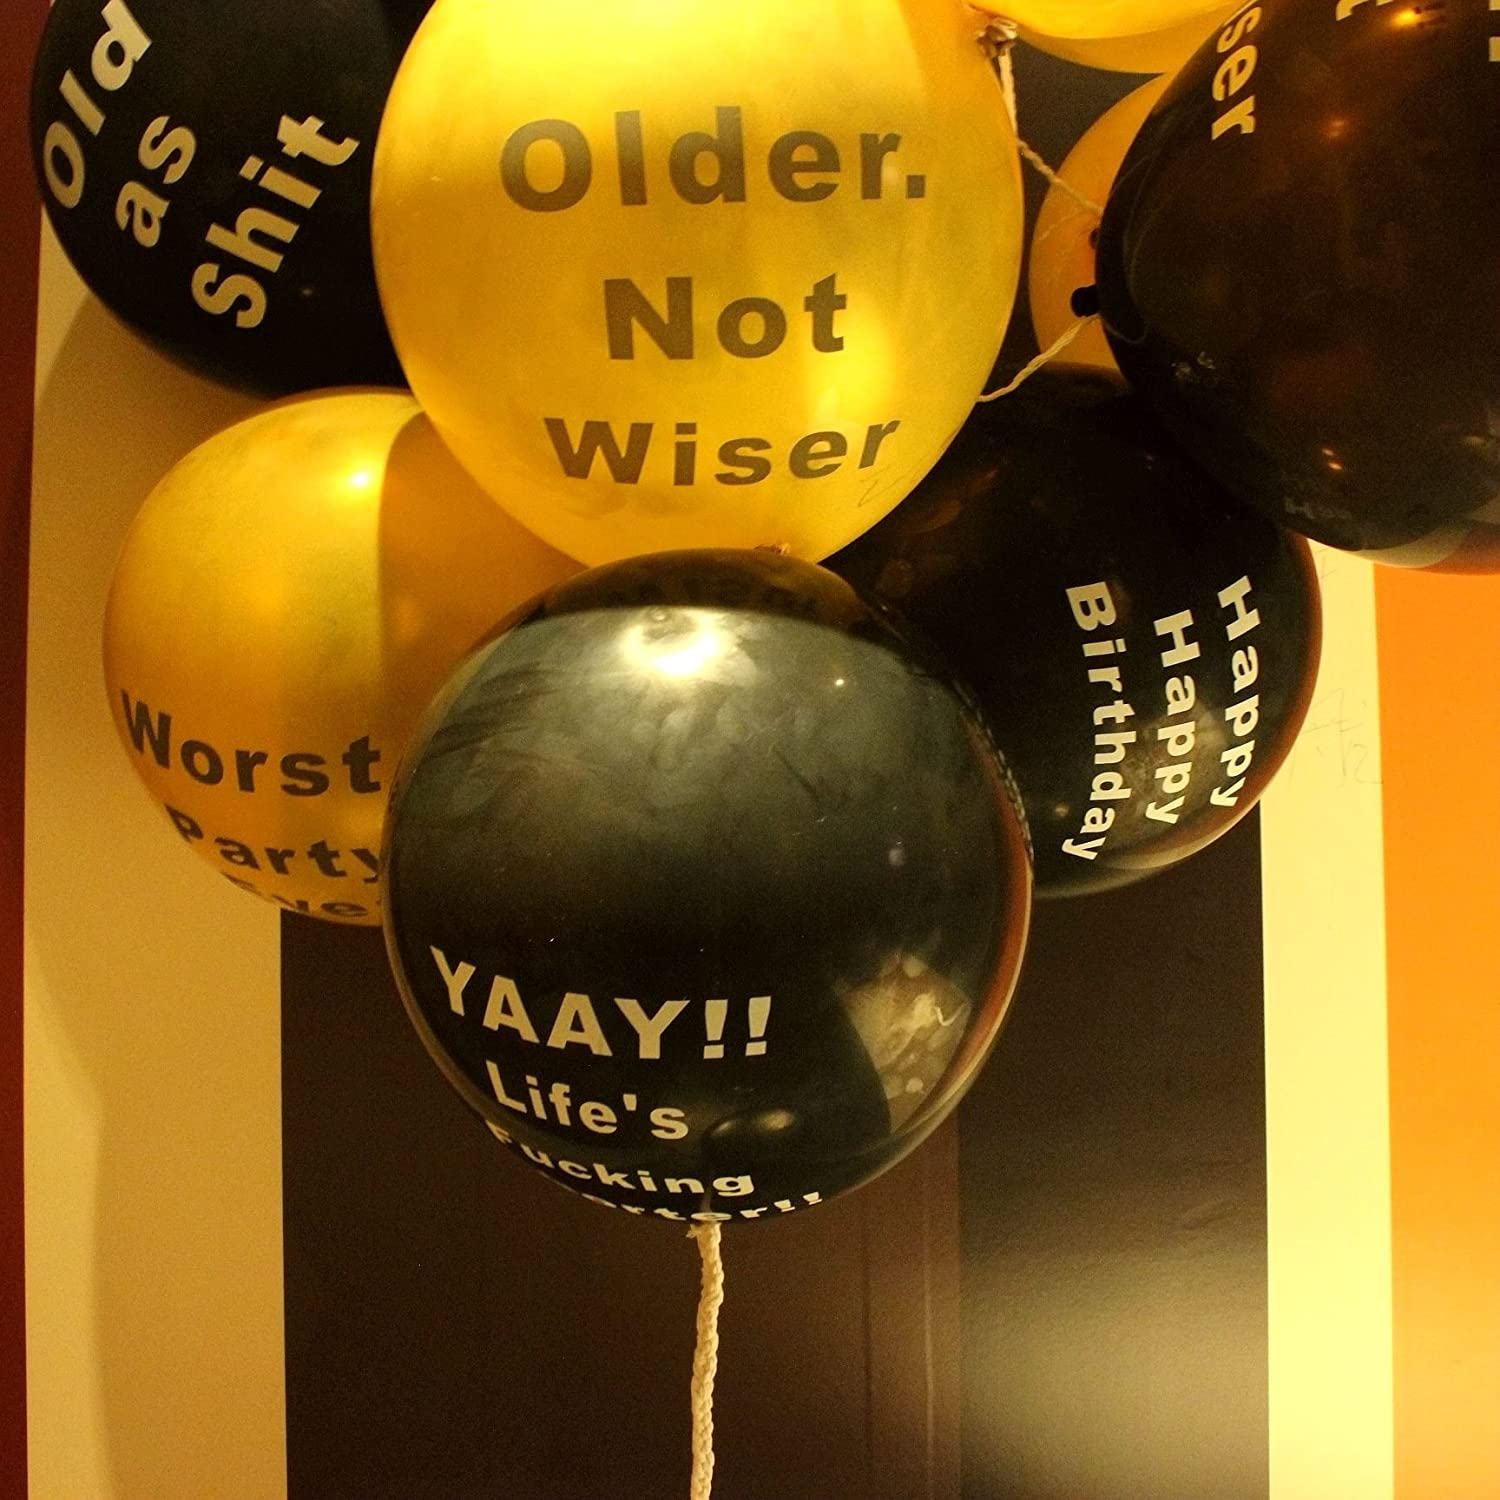 Abusive Birthday Balloons Naughty Funny Offensive Balloons for Her Him Adults Birthday Party Balloons Gold Black - 10 Pcs